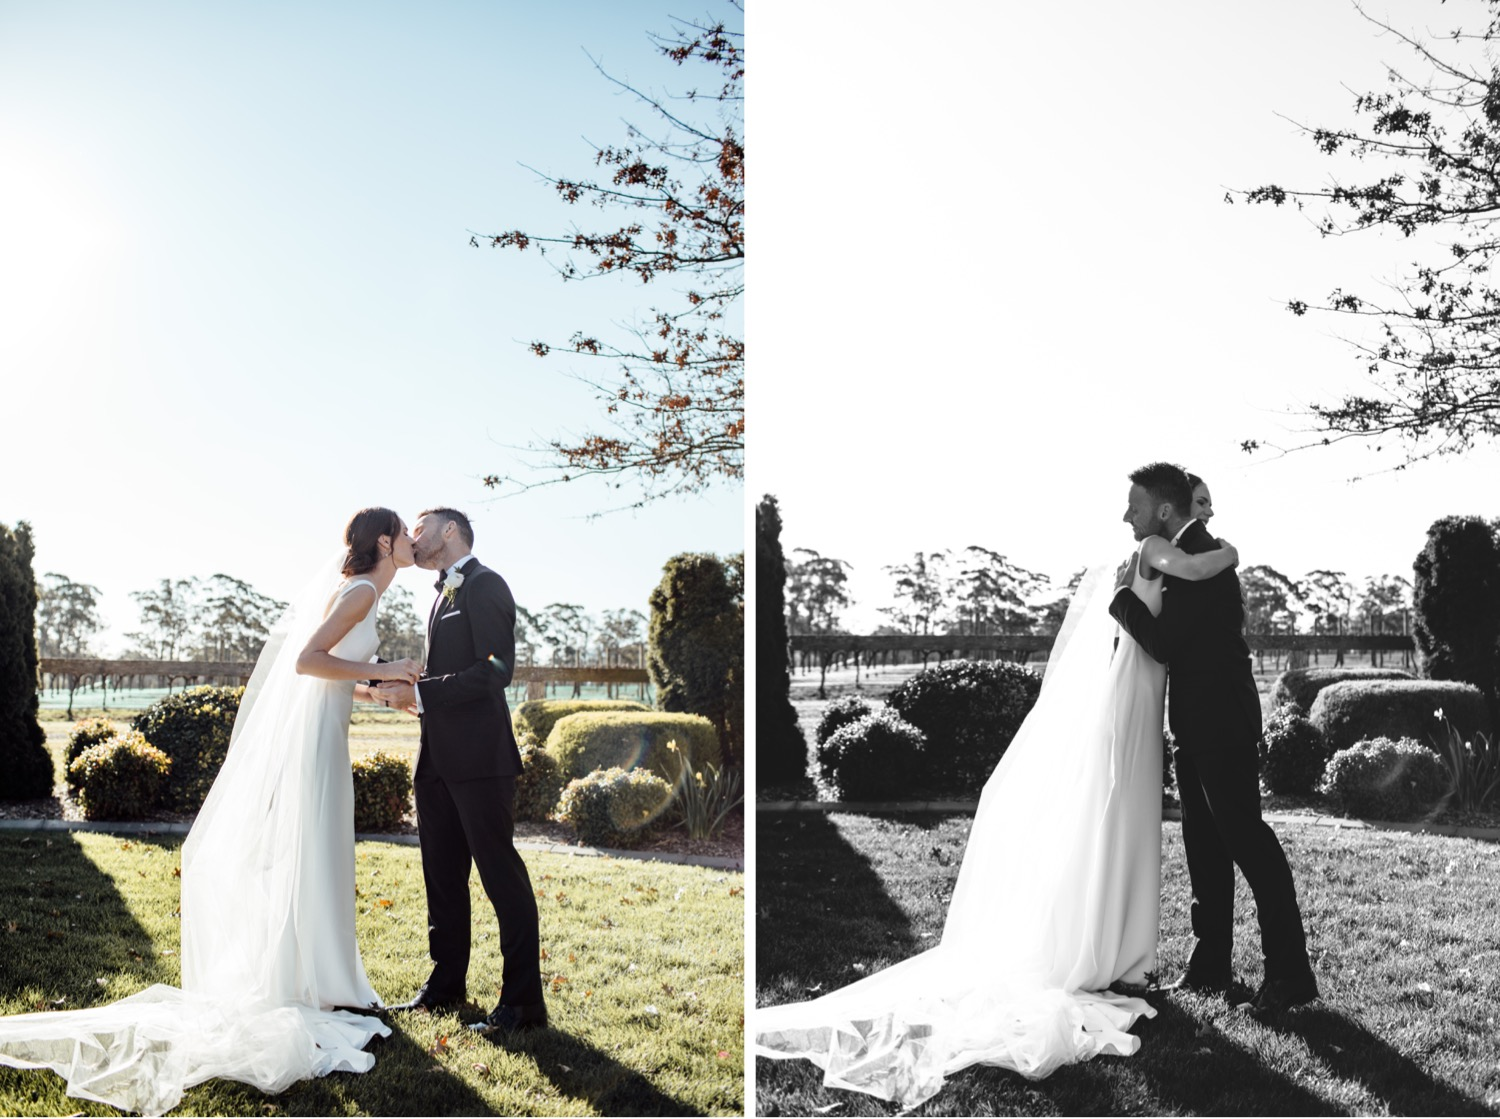 spring wedding ceremony at centennial vineyards Bowral